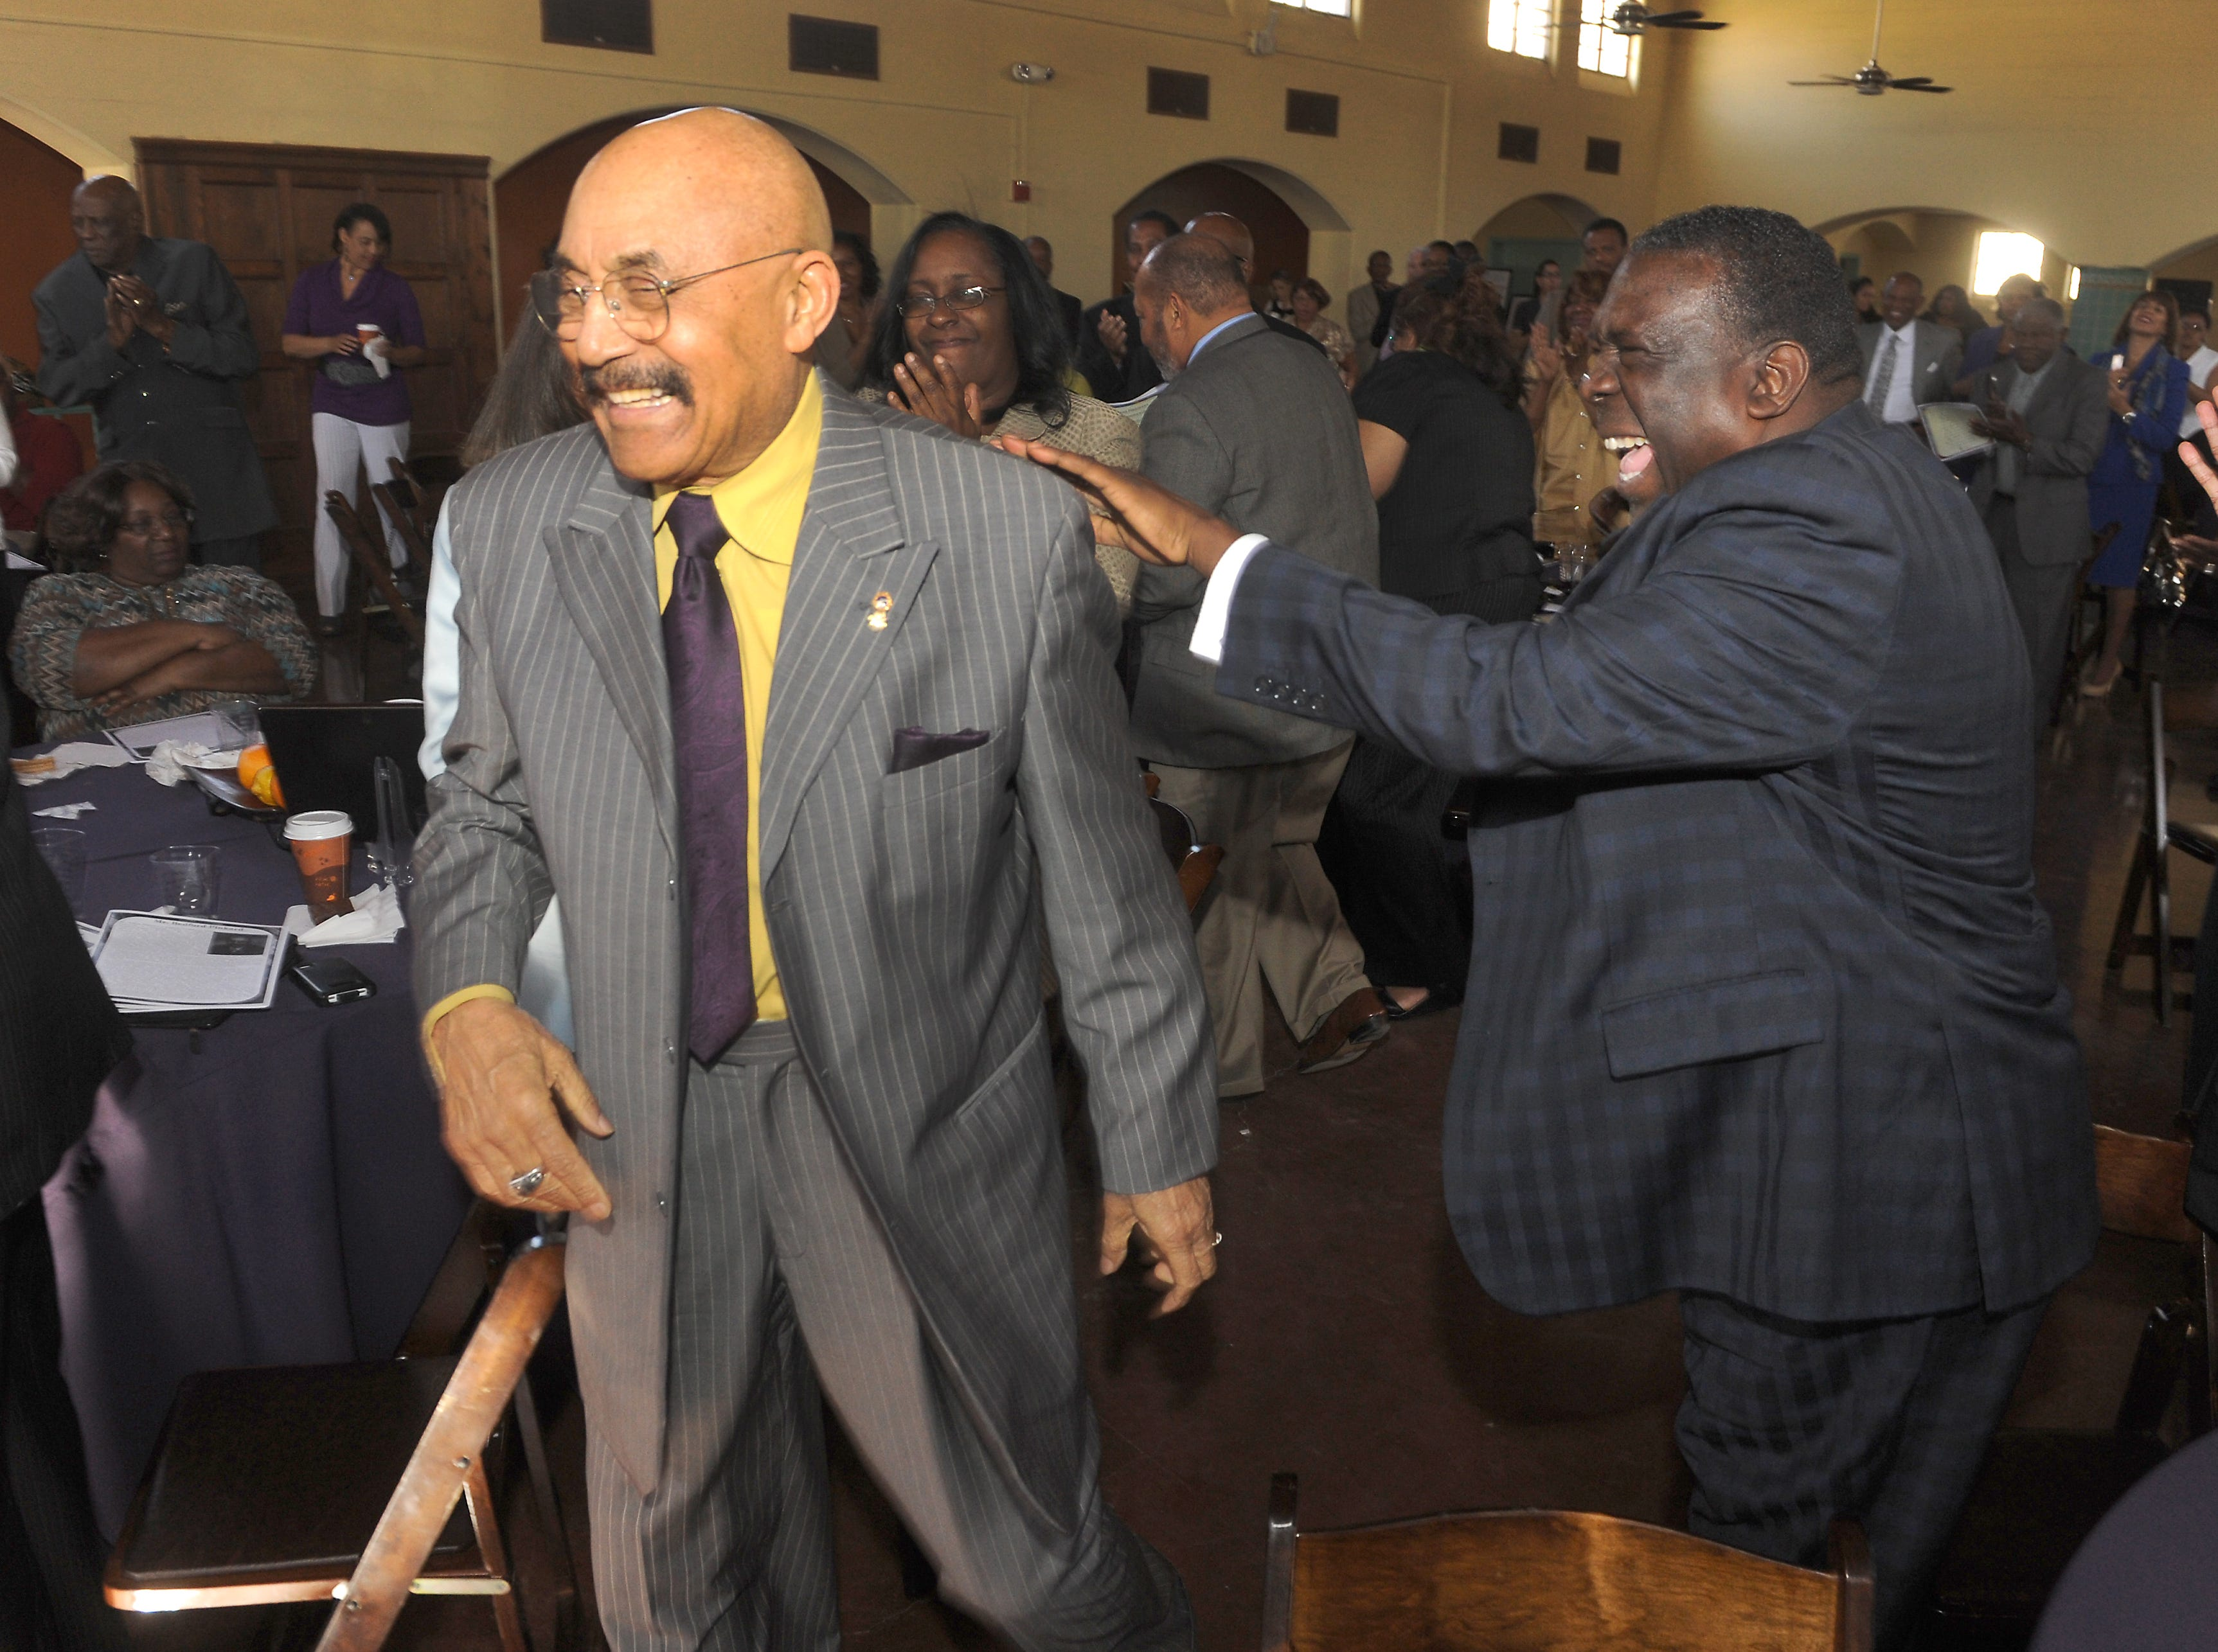 Bishop Broderick Alan Huggins, right, jokes with Bedford Pinkard as he goes up to accept his award in the field of politics at the a CSU Channel Islands African-American Achievement luncheon in 2013.